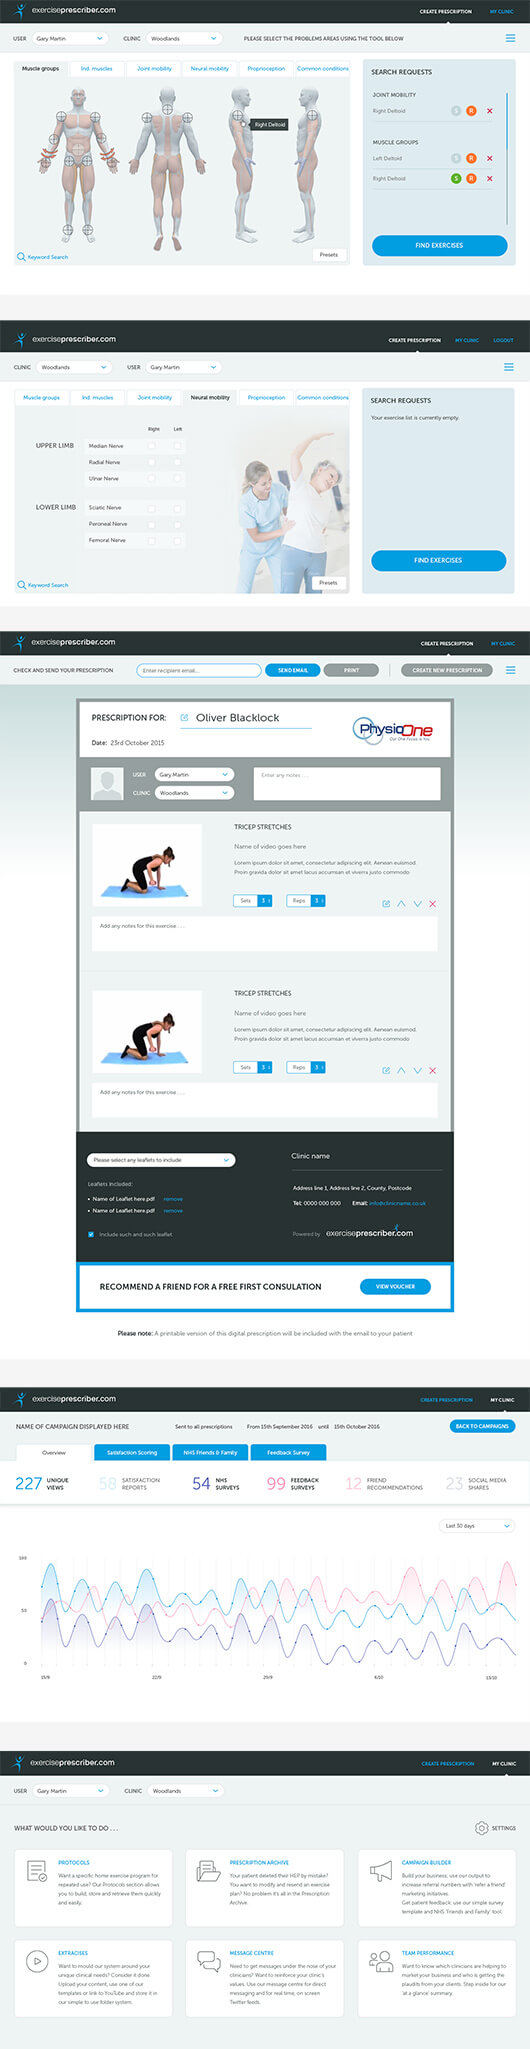 exercise web pages in mock up